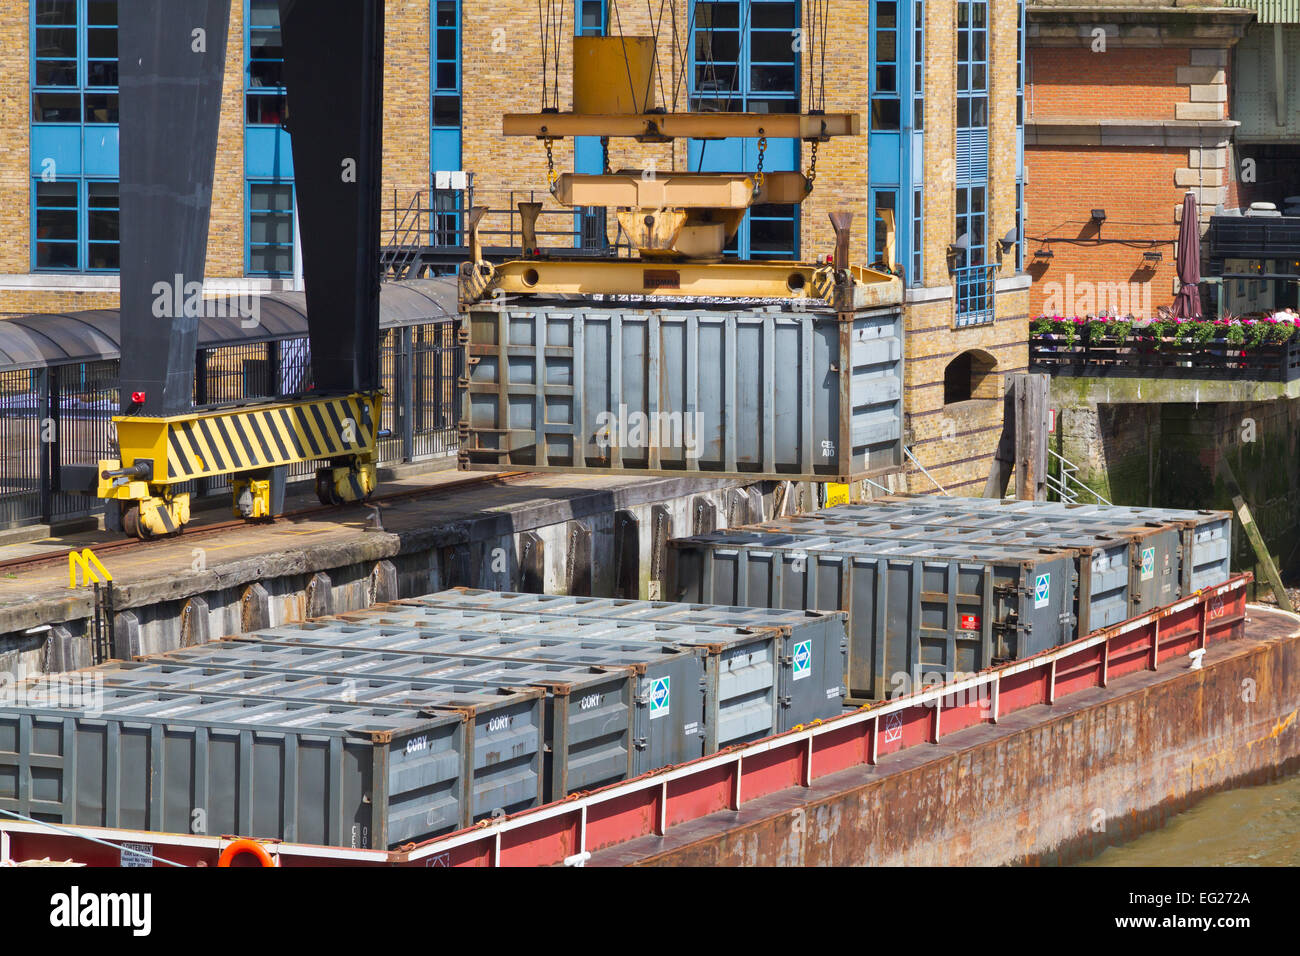 Walbrook Wharf waste containers being loaded onto a barge, City of London - Stock Image